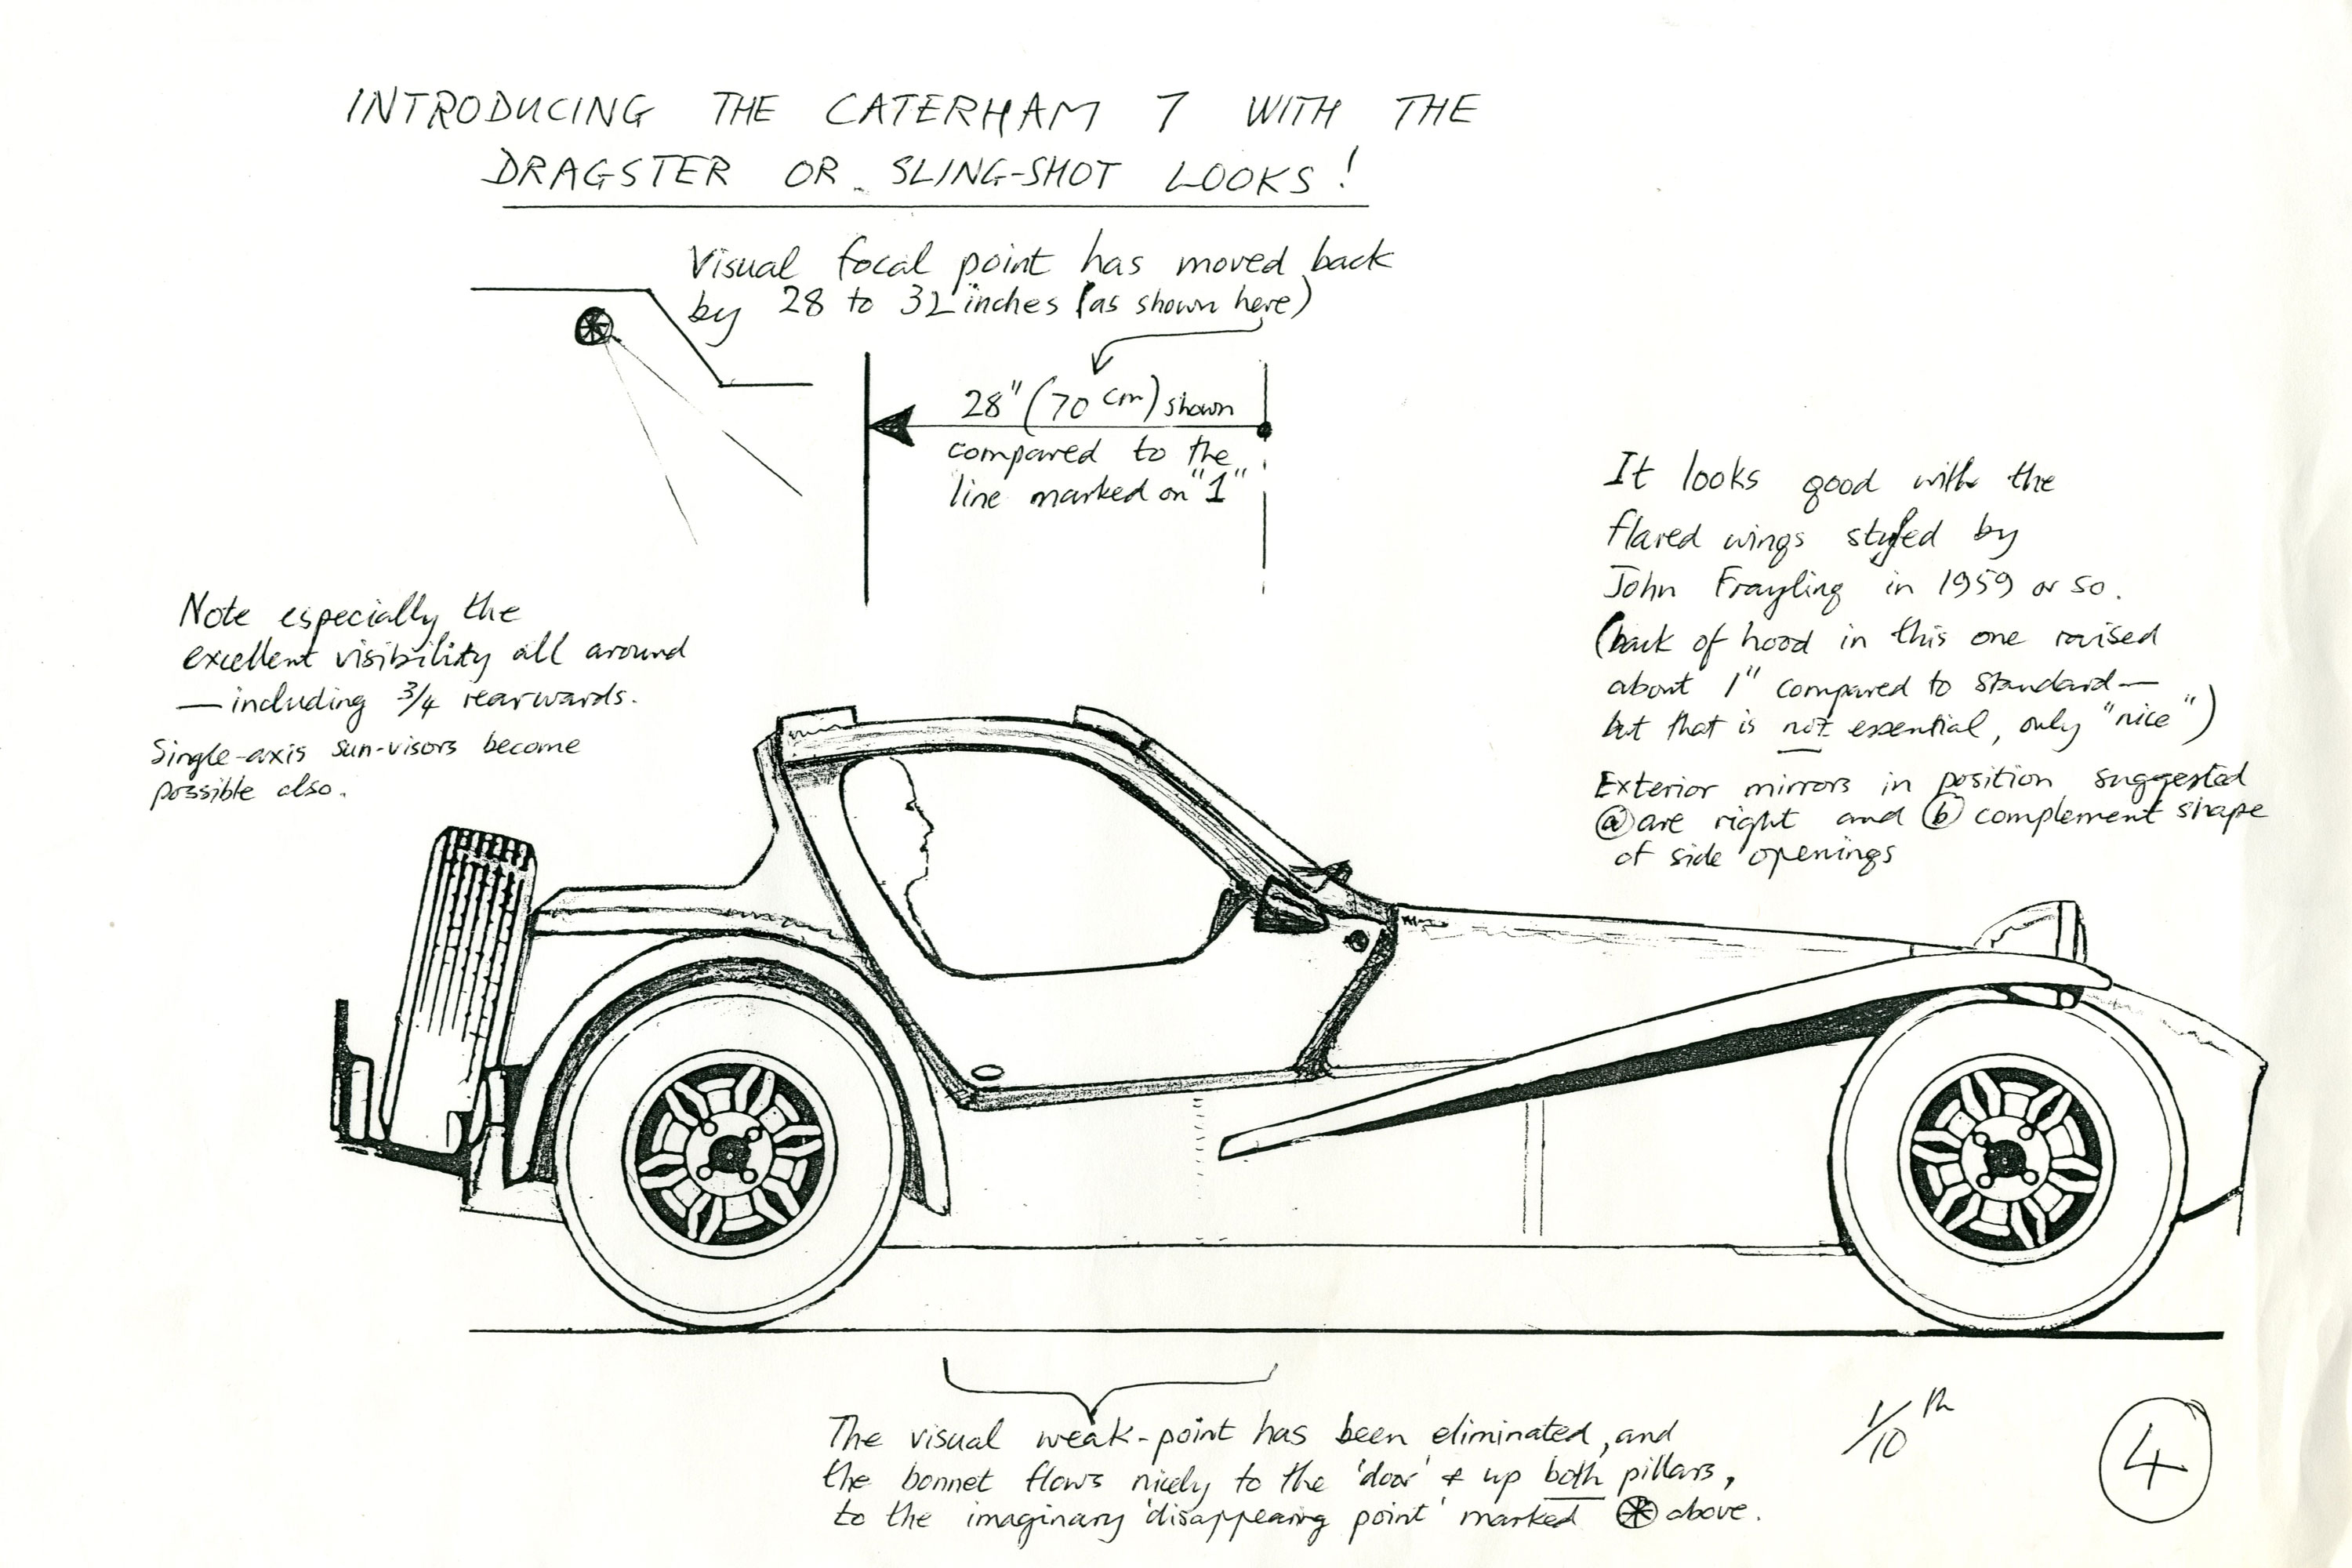 Caterham Seven design sketch